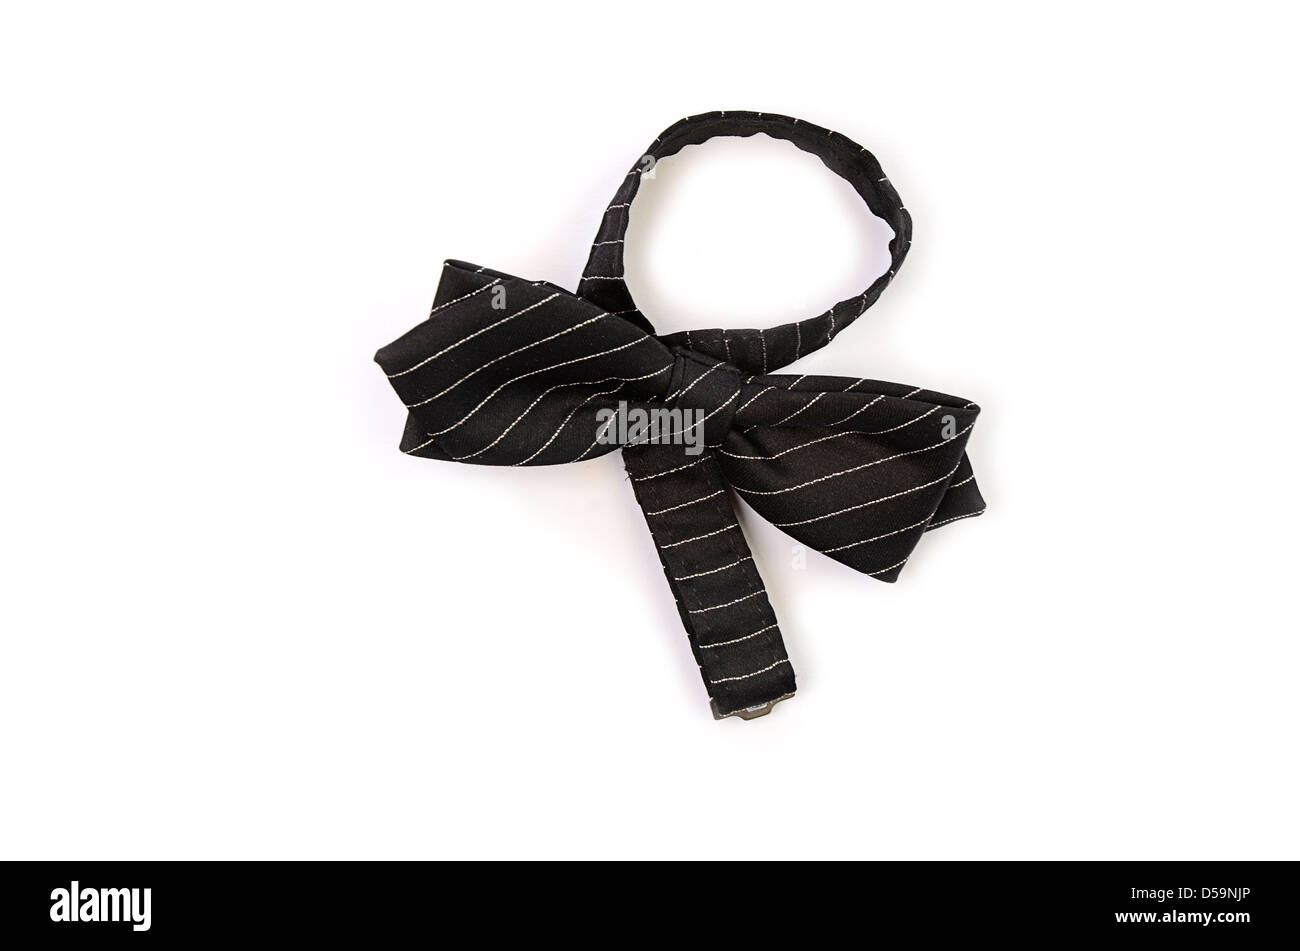 Smart black bow tie on a white background - Stock Image